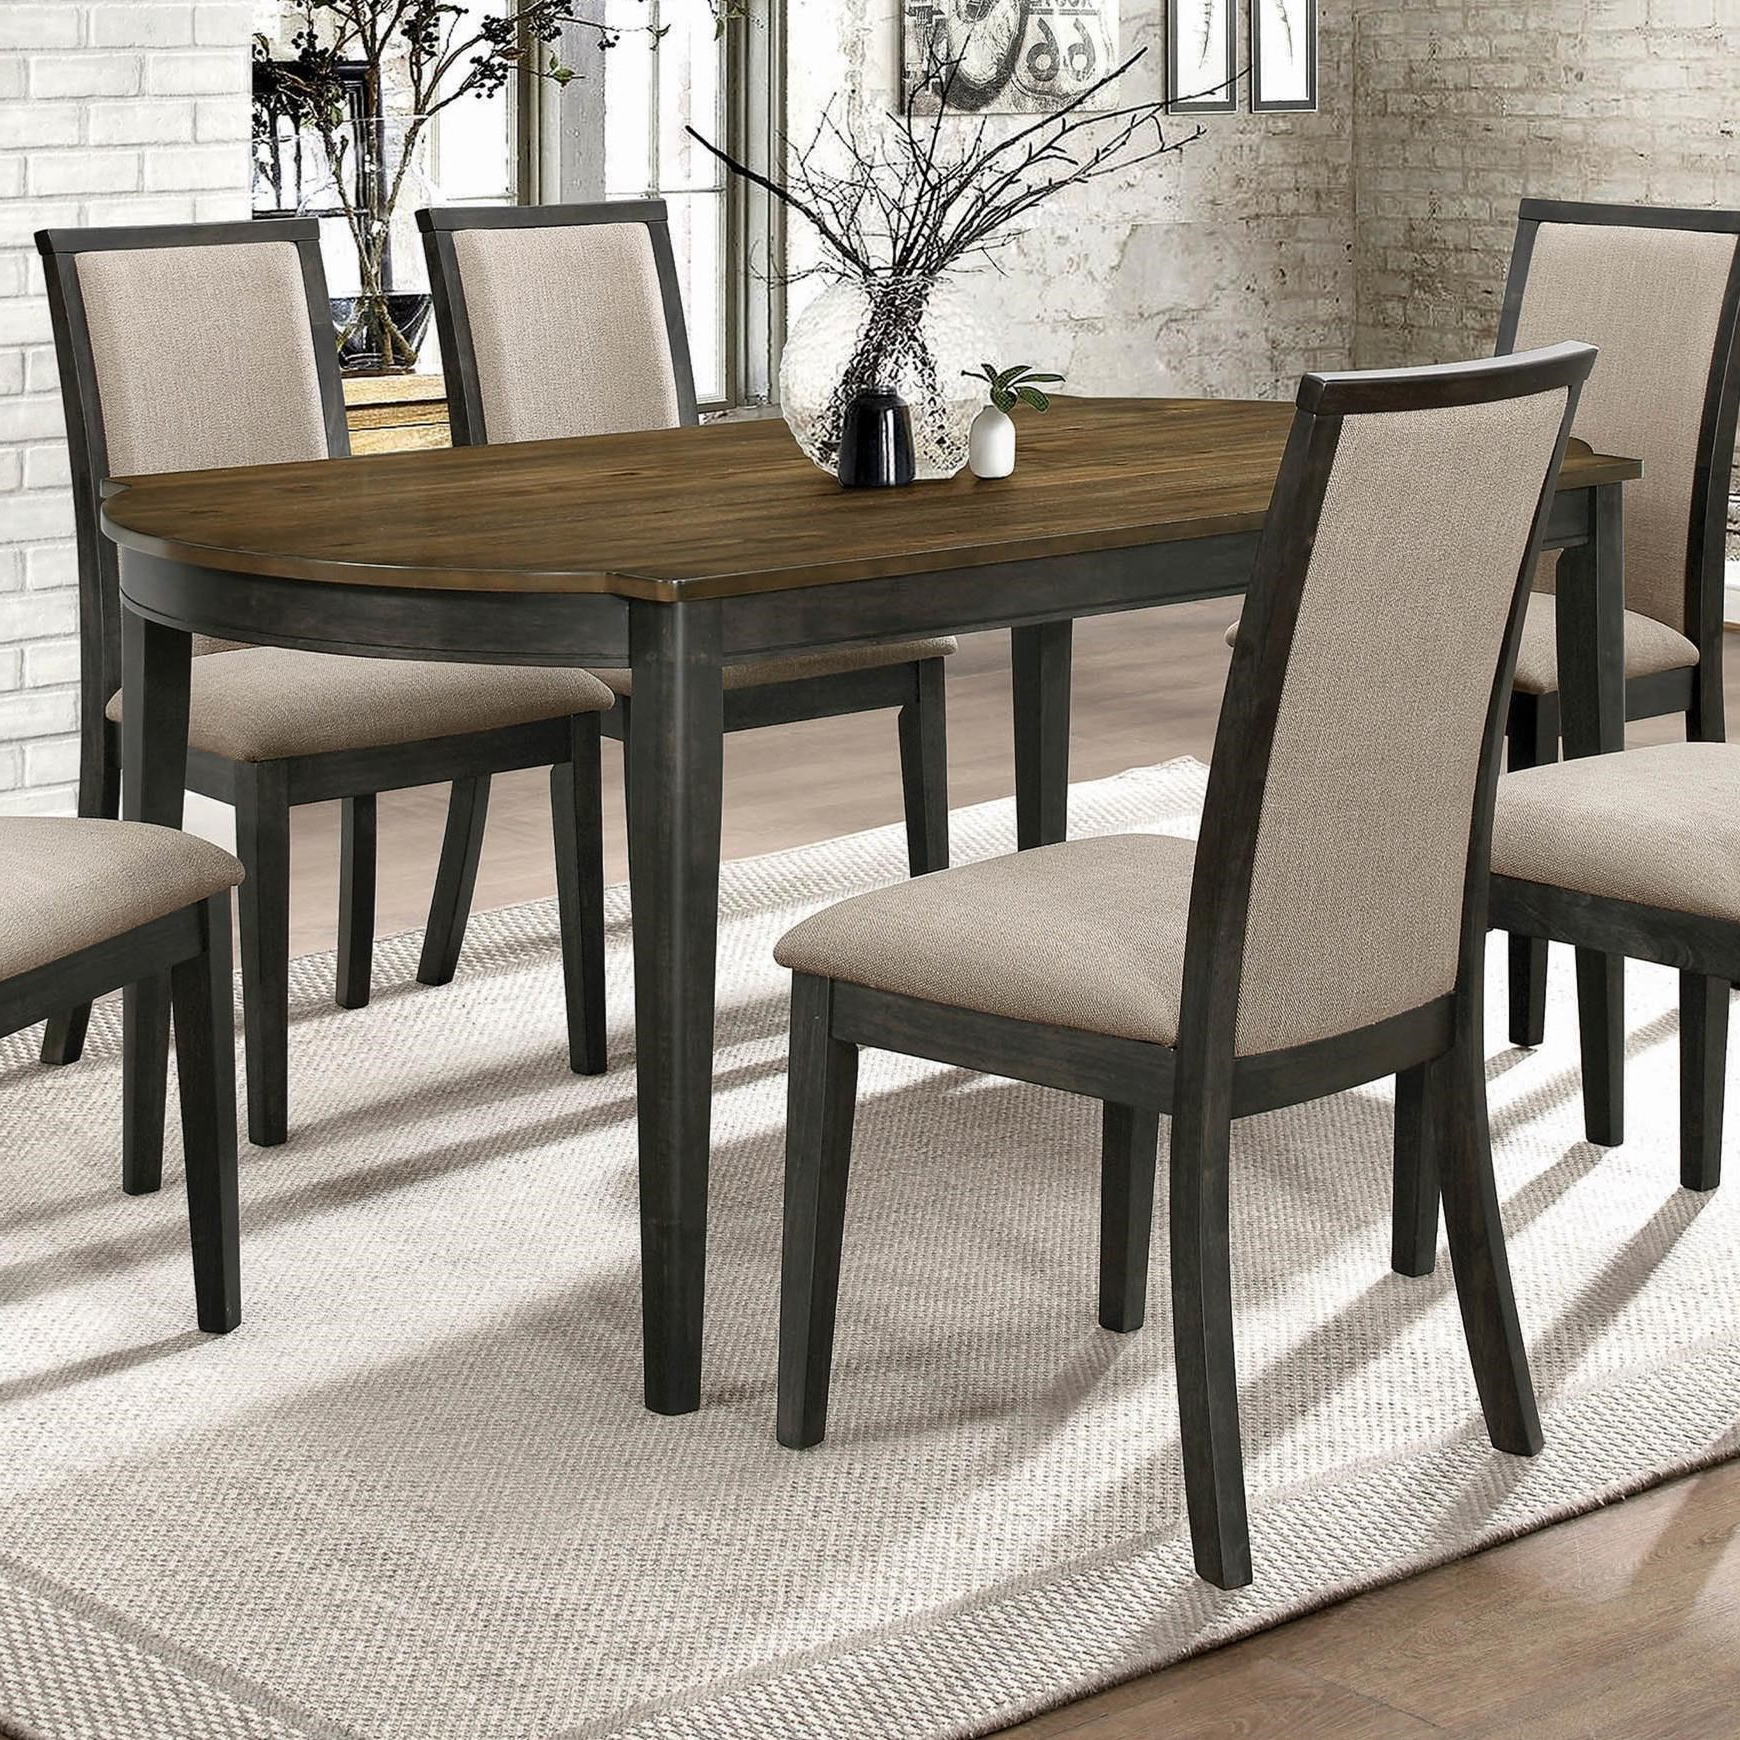 Coaster Clarksville Transitional Dining Table With 2 Tone With Current Charcoal Transitional 6 Seating Rectangular Dining Tables (Gallery 18 of 30)